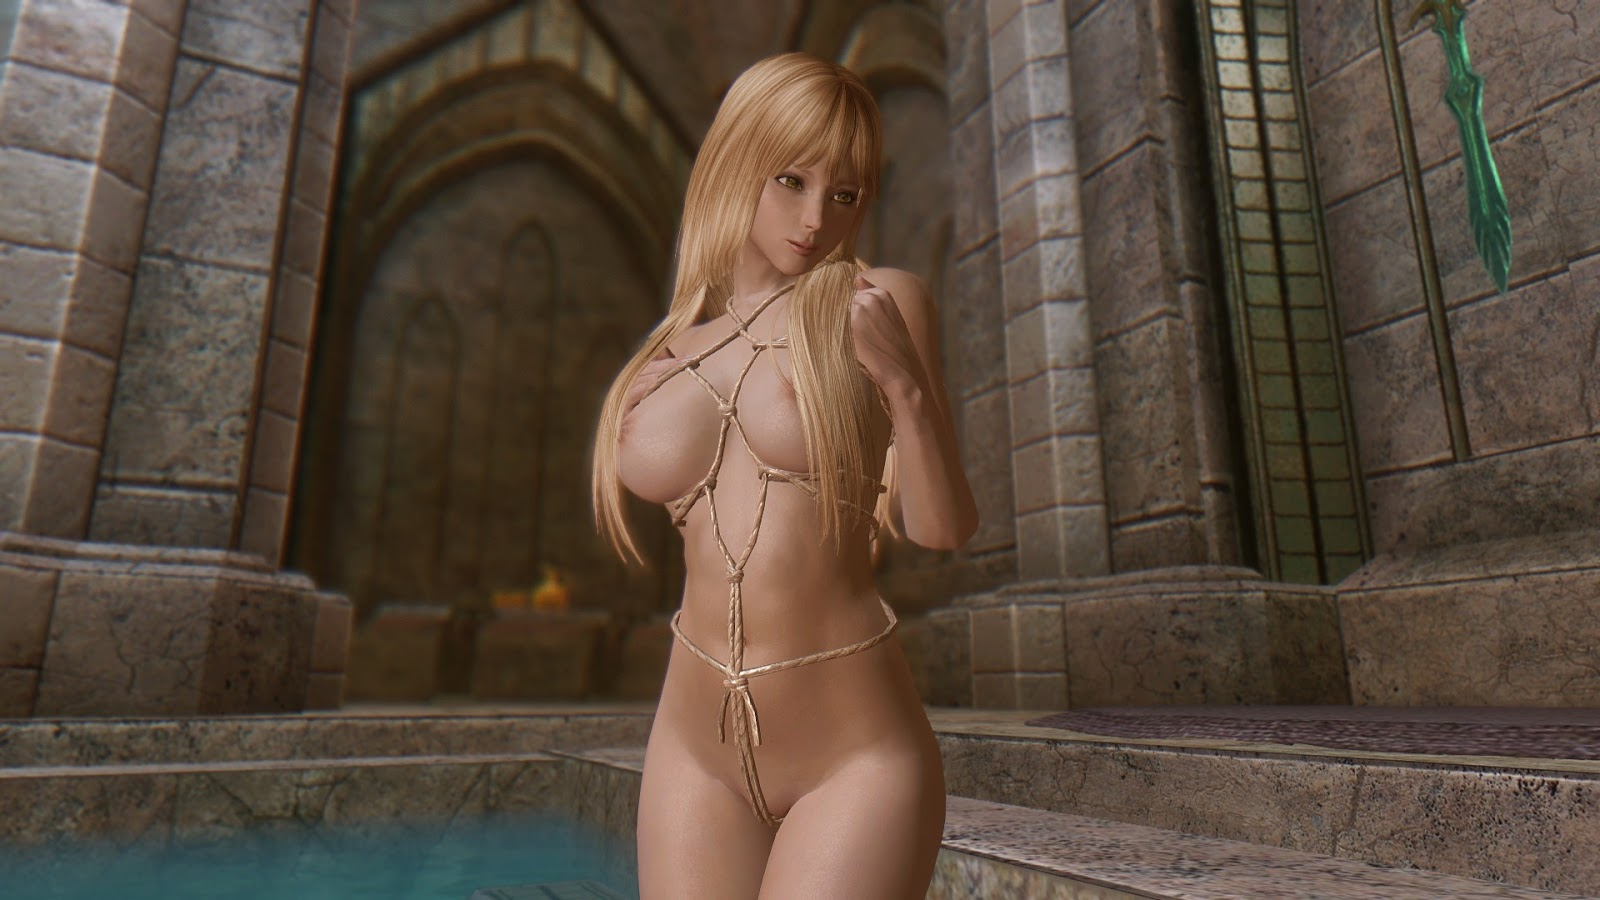 Skyrim nude models sex movies